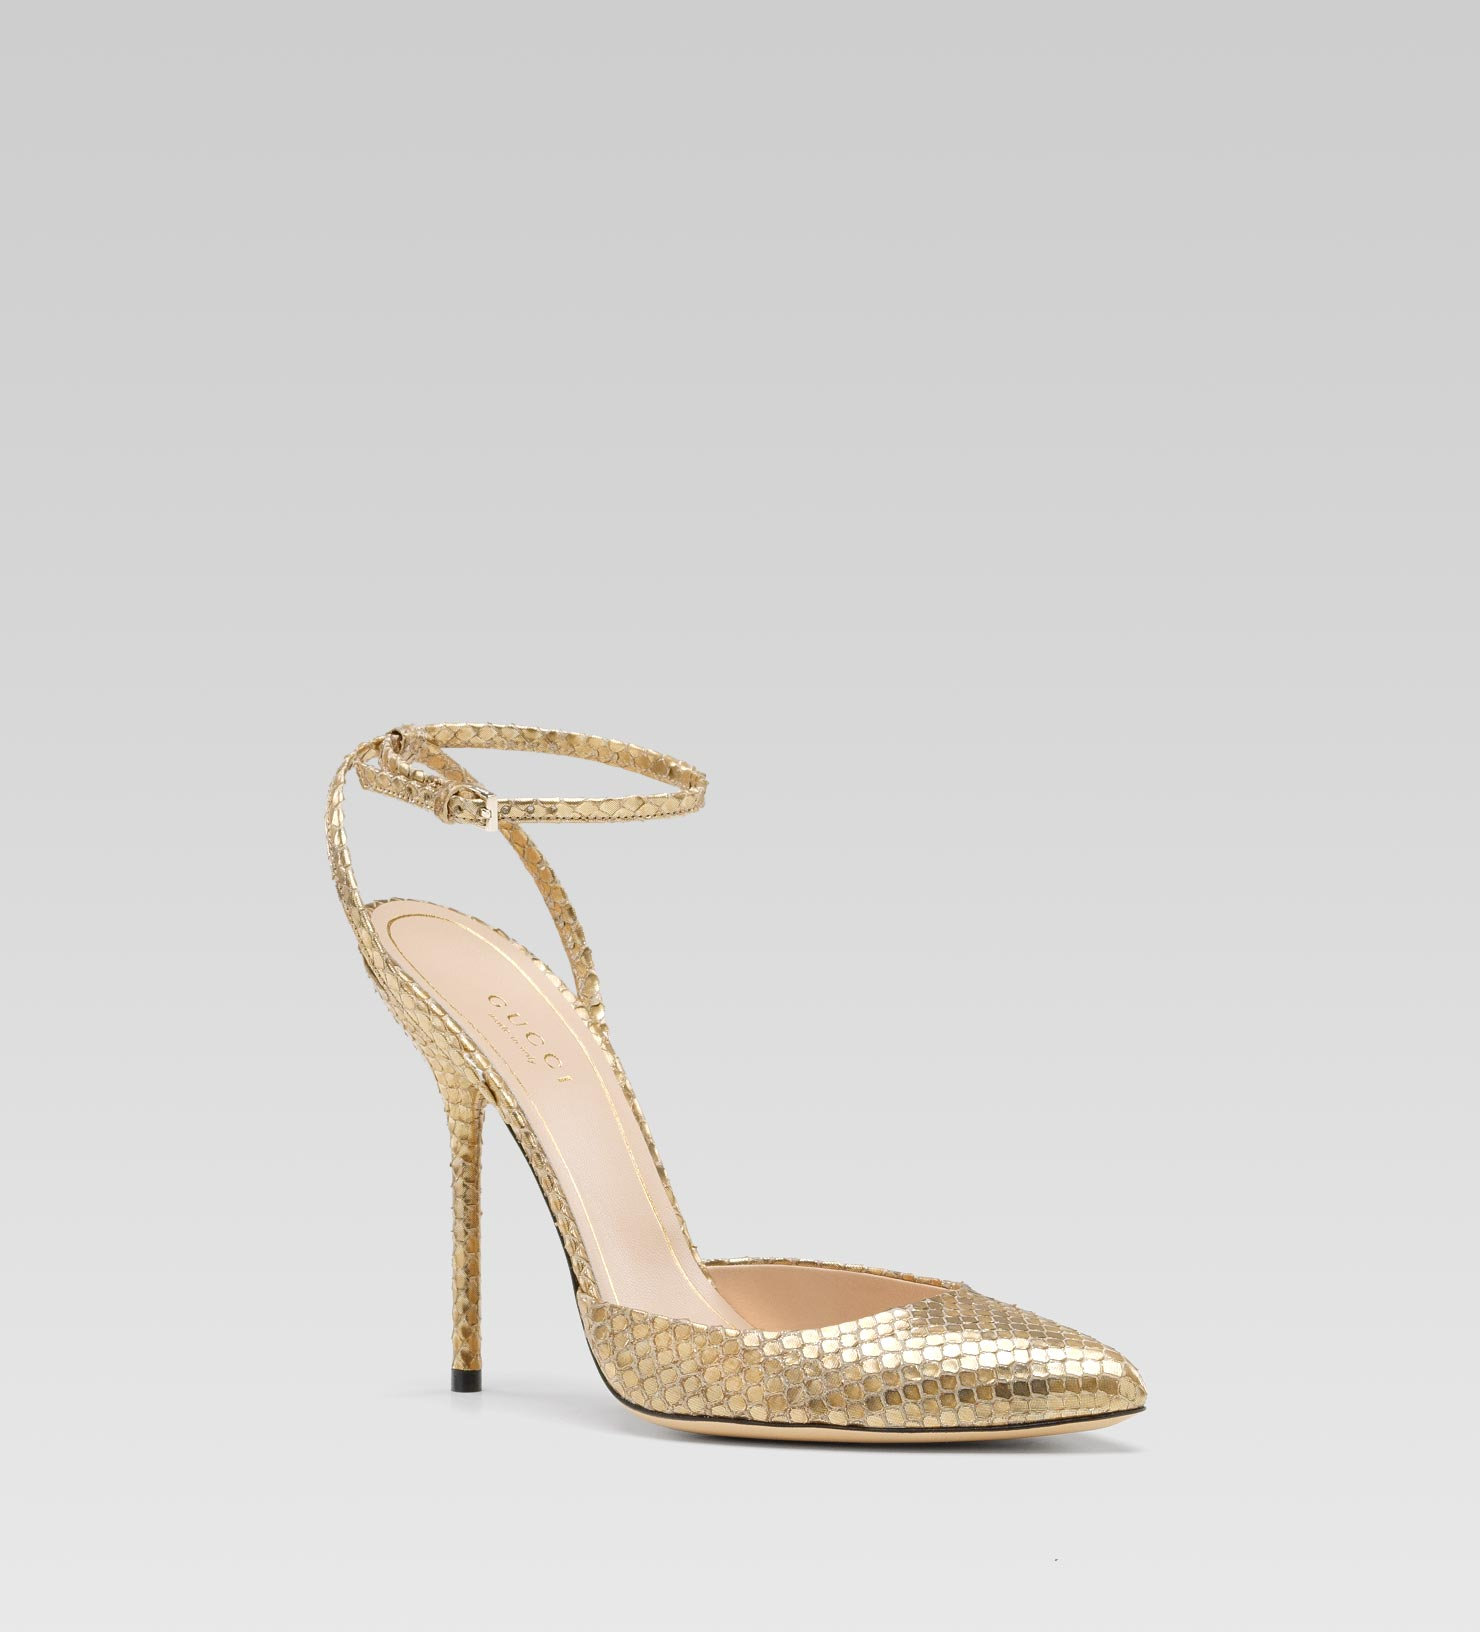 824d7aeb6691 Lyst - Gucci Noah High Heel Pointed Toe Pump with Ankle Strap in ...